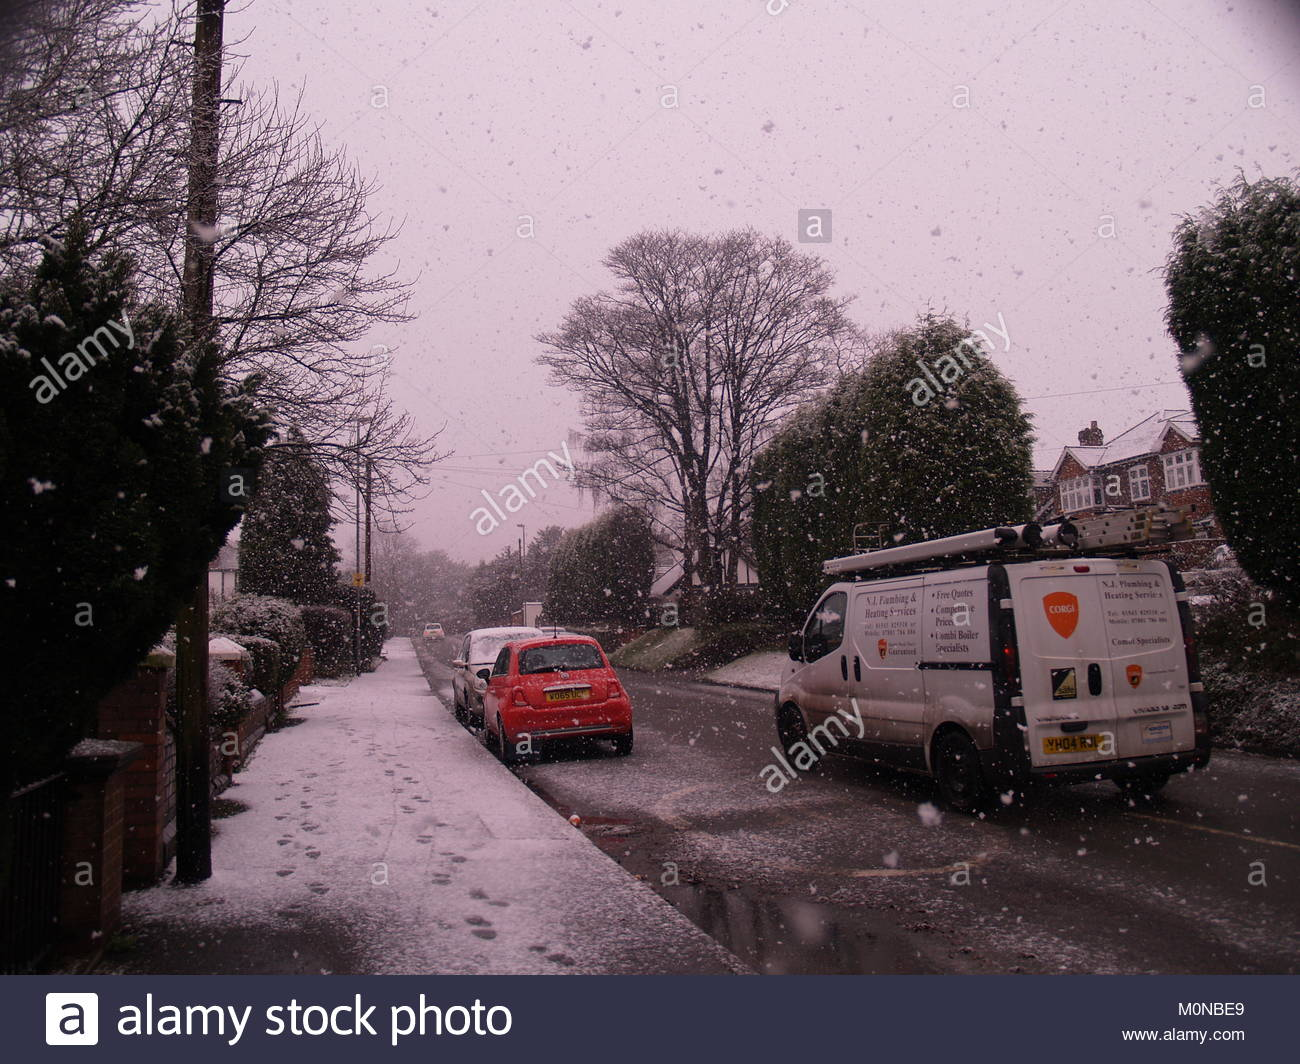 The Walsall Wood Road In Aldridge, West Midlands (England) - Stock Image